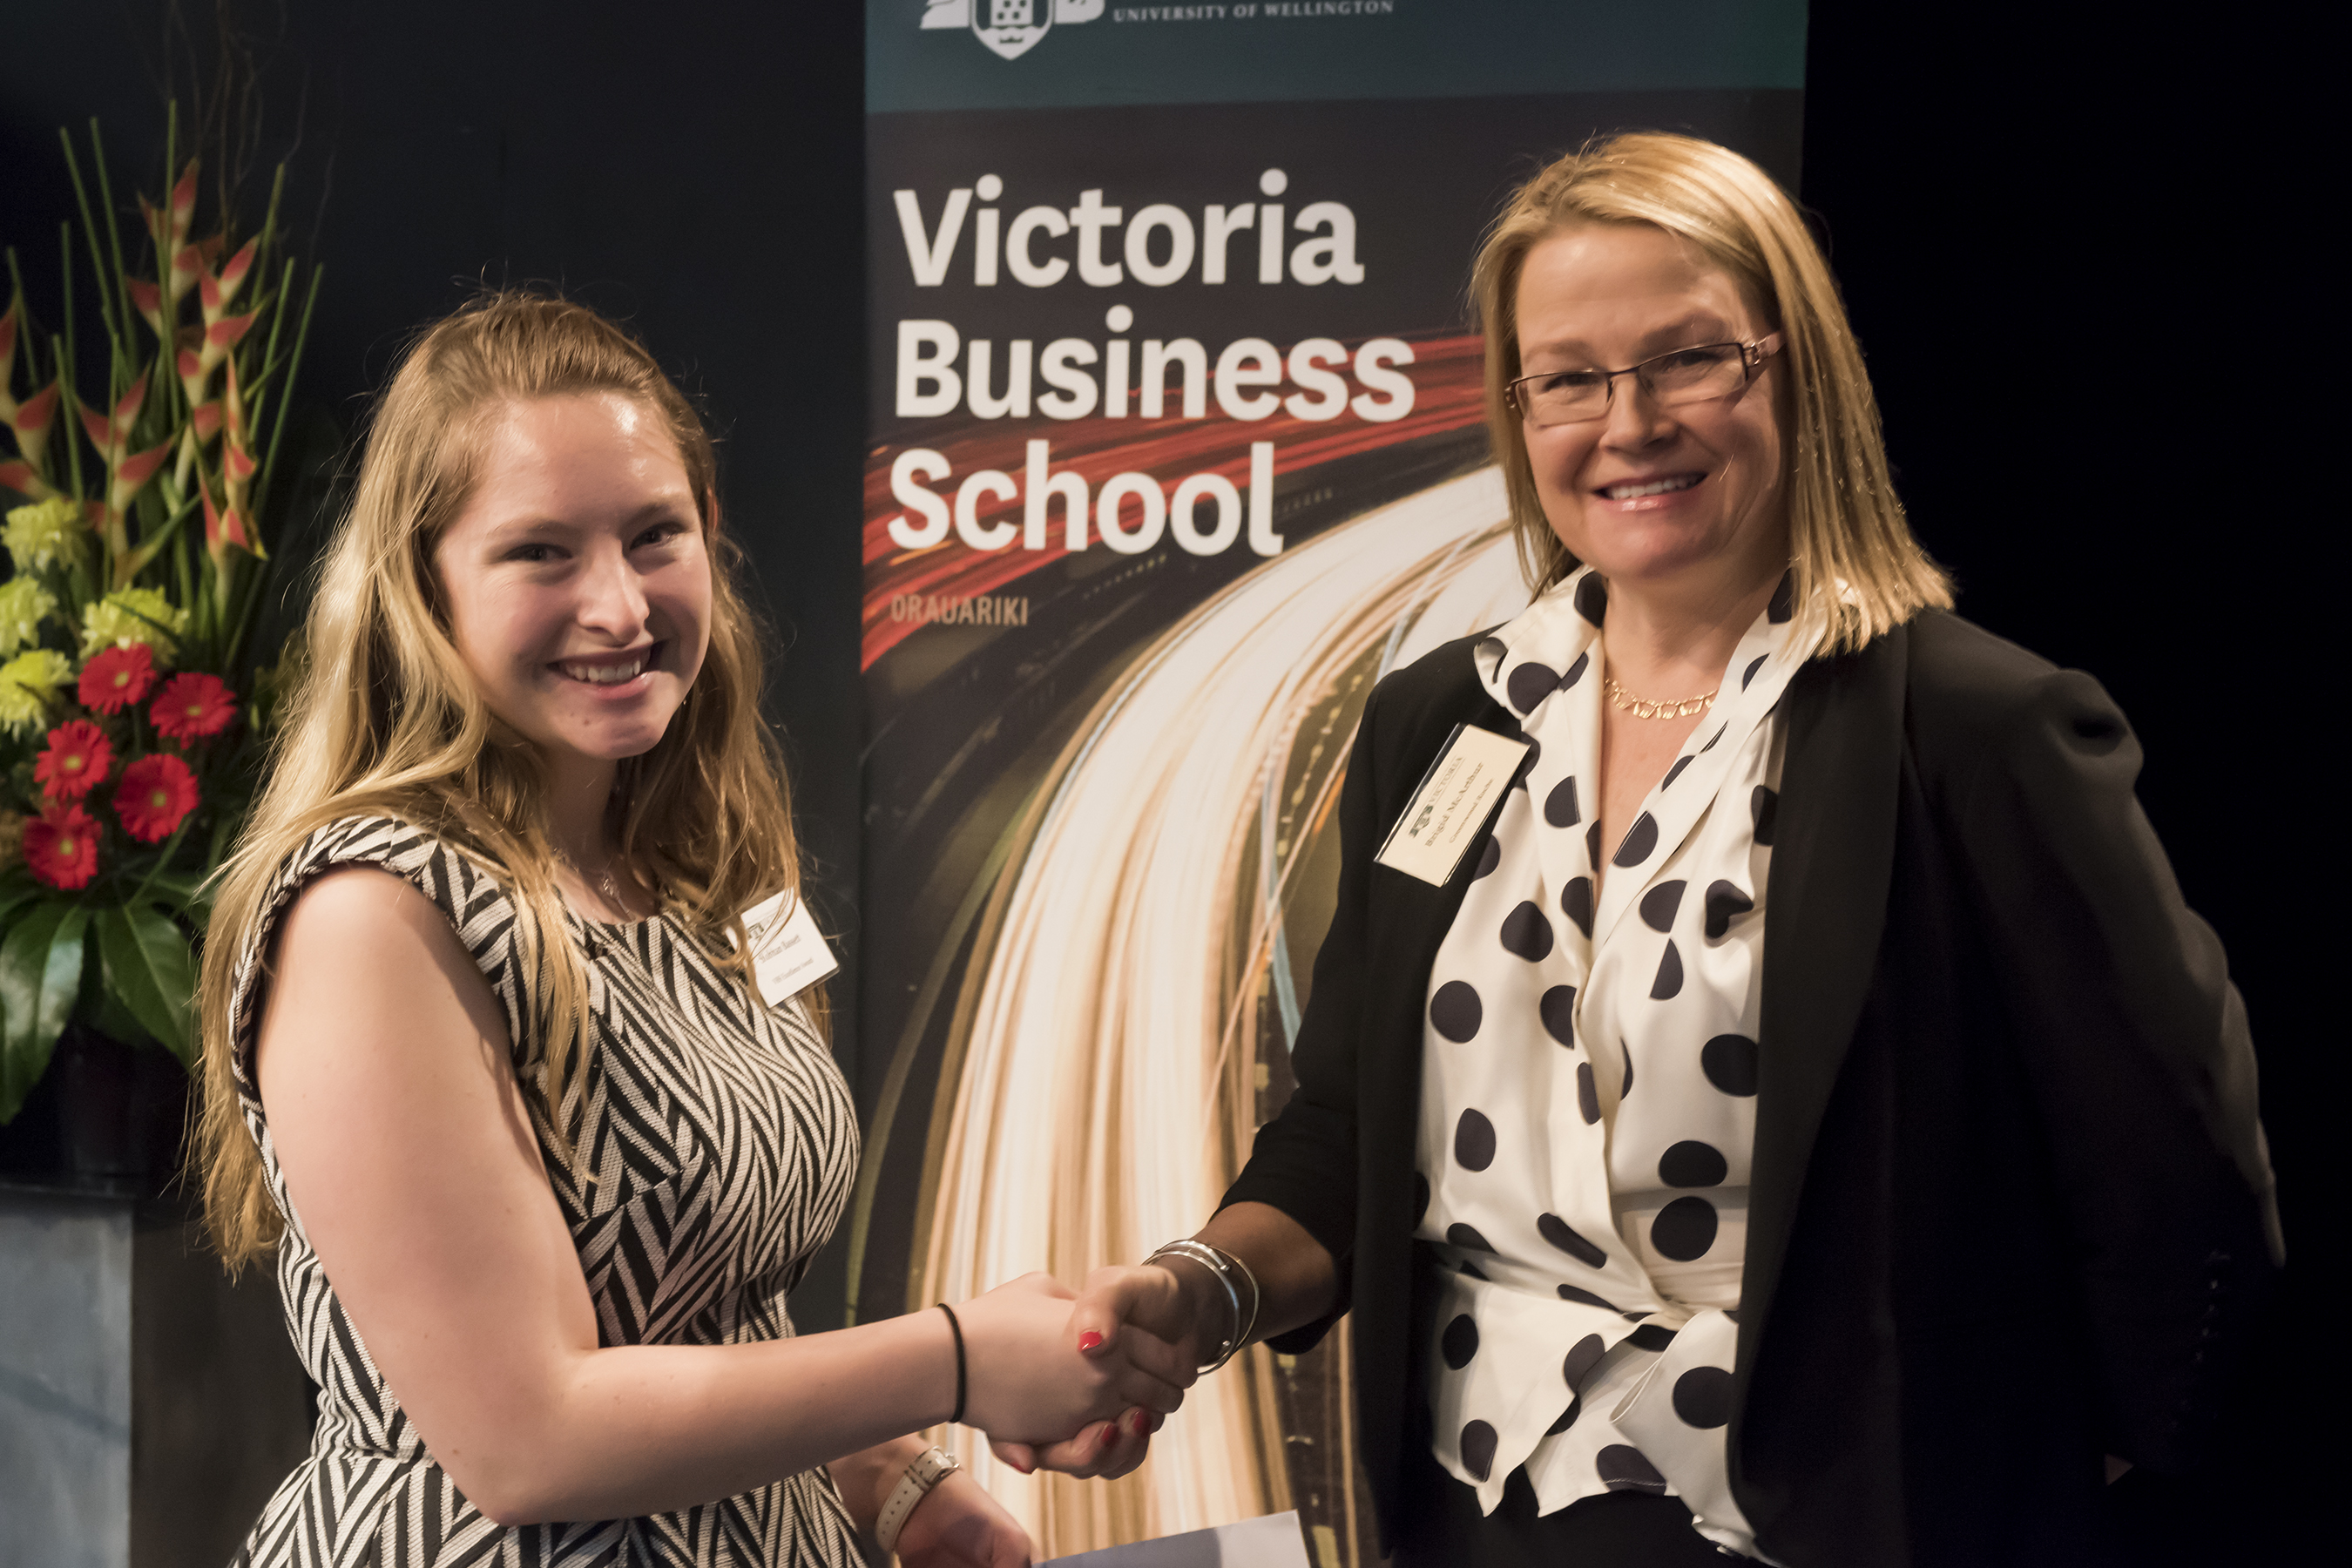 Victoria Business School